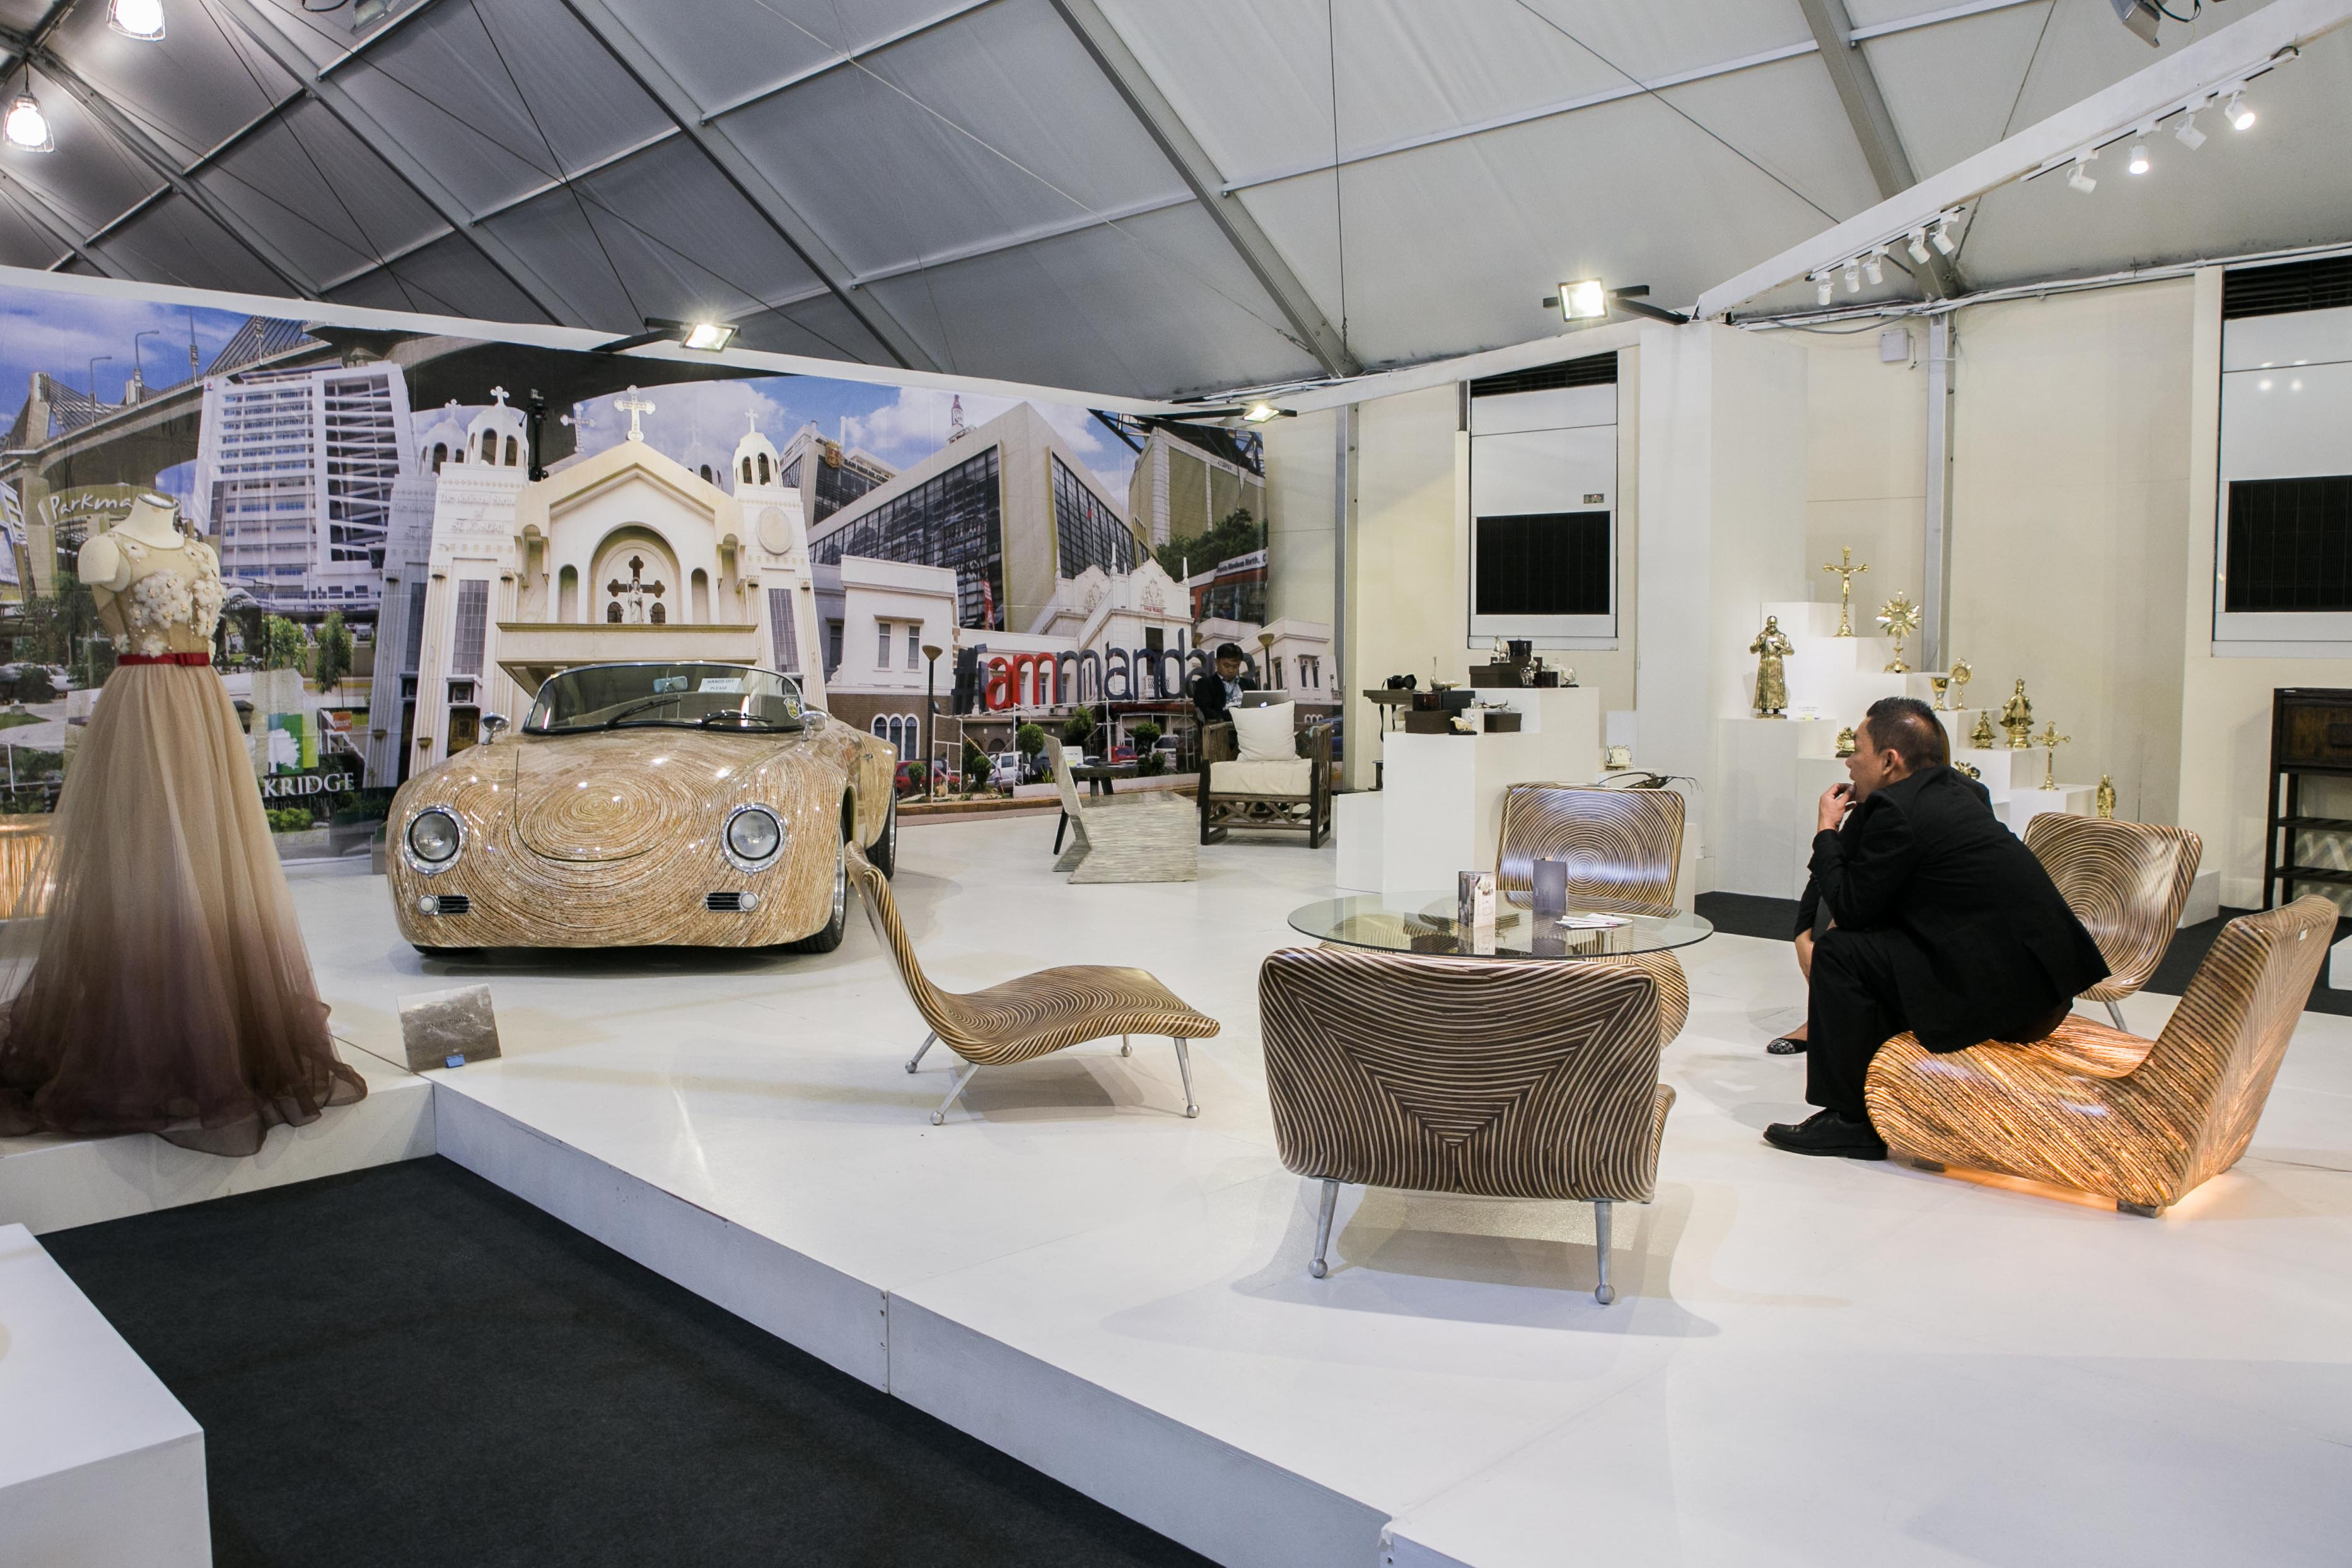 ONE-OF-A-KIND CAR. A 1959 Porsche convertible (not for sale) handmade with coconut twigs and rattan, and encased in fiber glass, is displayed at Expo Mandaue at the APEC-International Media Center. It was designed by Clayton Togonon. Photo by Pat Nabong/Rappler